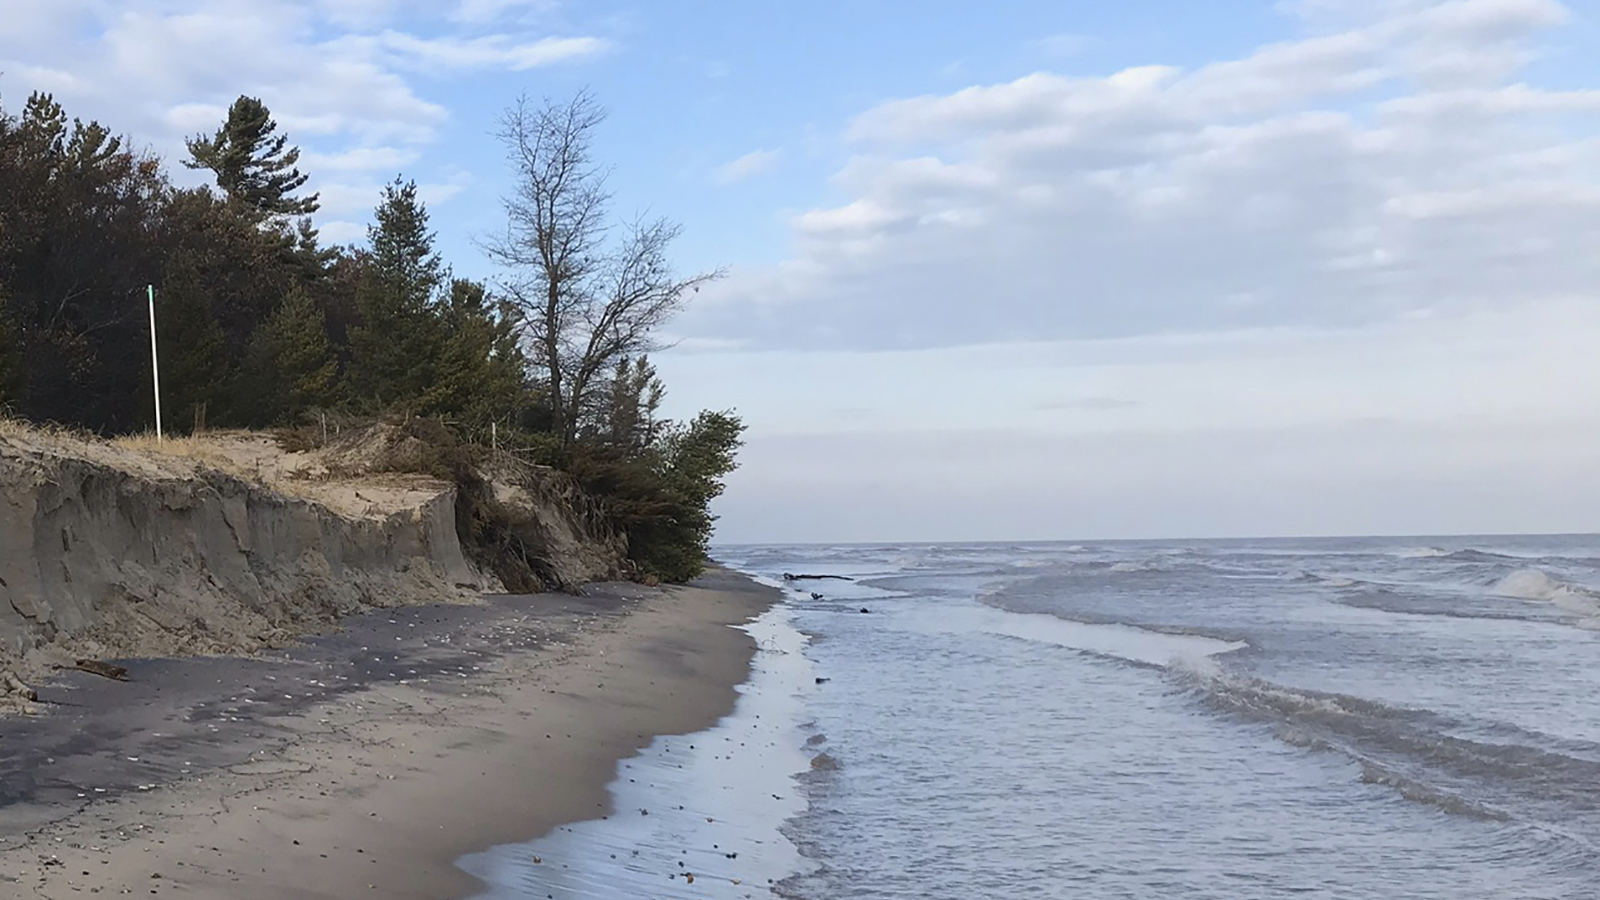 Eroded beach with trees in background and vertical pipe marking a proposed golf course hole